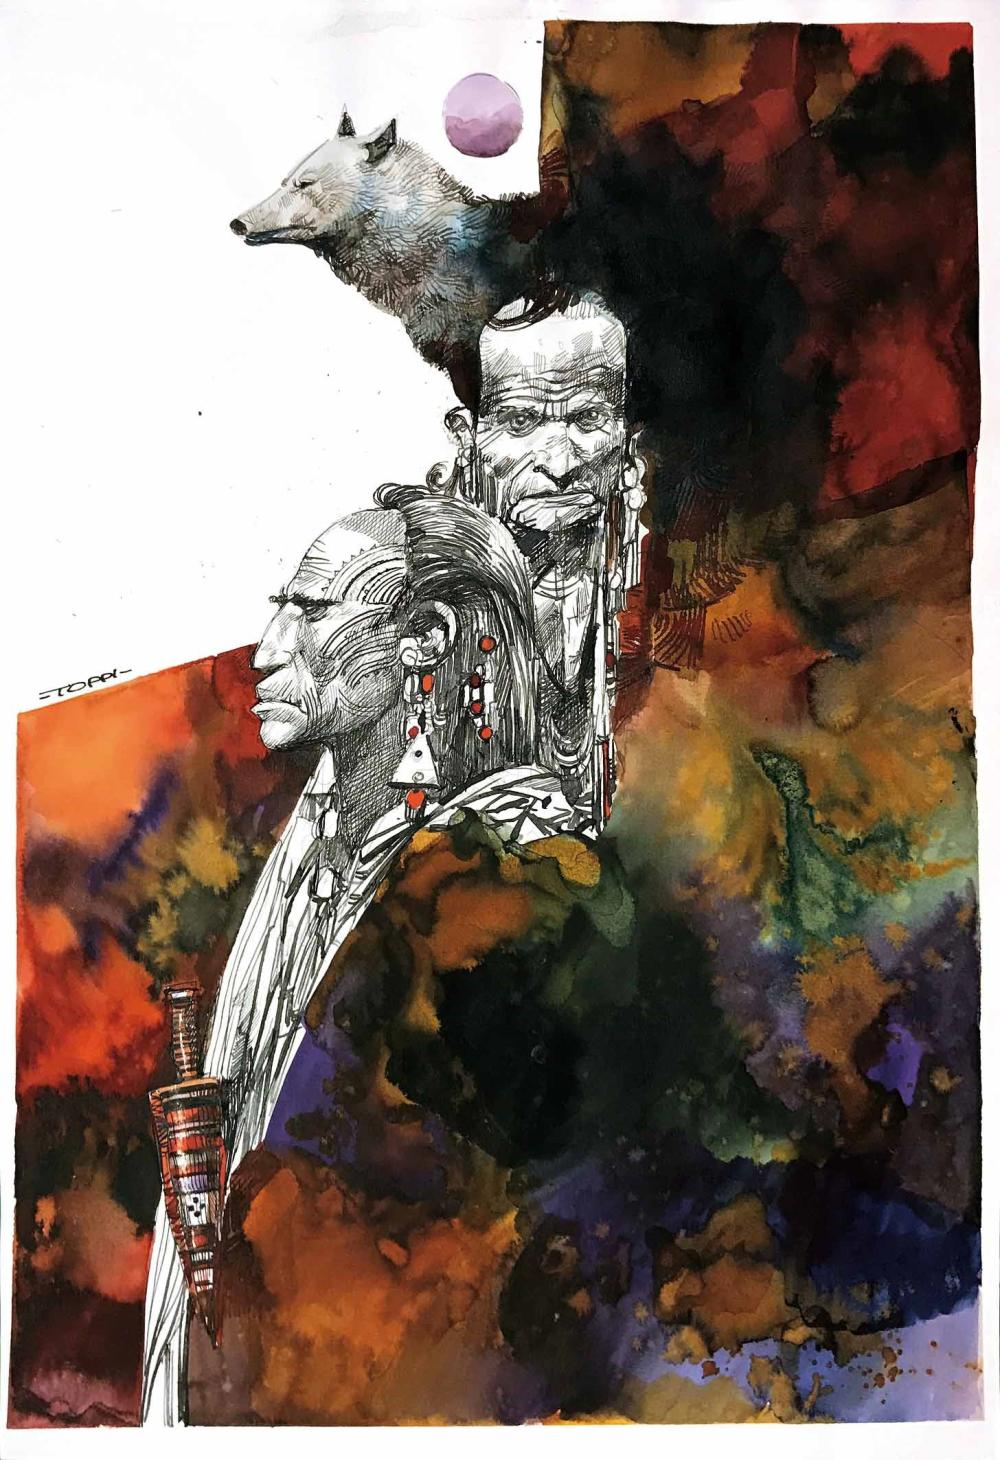 Comics Worldwide: Italy (pt. 2) Sergio Toppi was a remarkable Italian illustrator and comics author. A self-taught artist, Toppi was one of the great Italian comics innovators of the '60s and '70s. His best-known works would be Sharaz-De, The Collector, Blues, and Colt Frontier. https://t.co/kpPjqXfol4